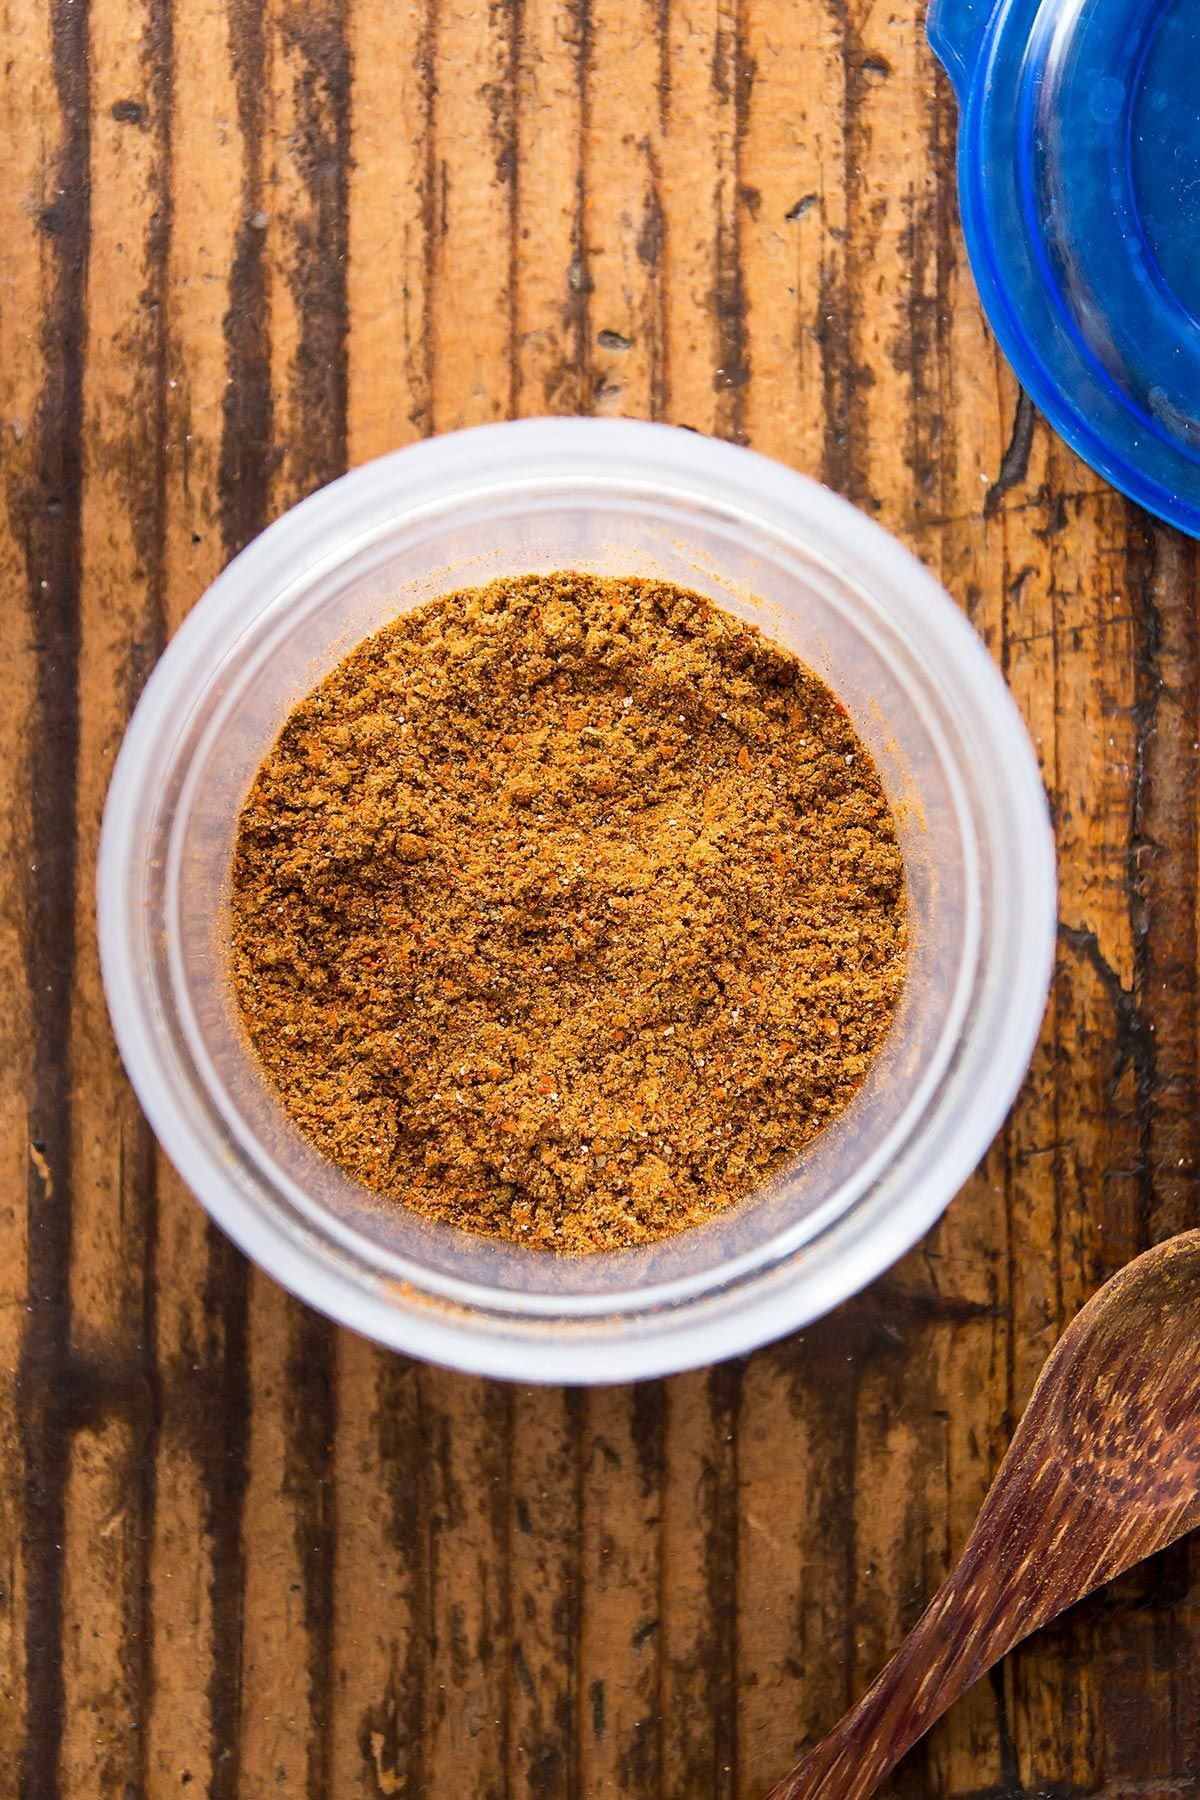 Make your own homemade gluten free taco seasoning! You save a lot compared to store-bought taco seasoning packets and on top of that you get to avoid the fillers and preservatives. Most likely you already have all of the taco mix ingredients in your spice cabinet. For 1 lb | Best | Clean | Mild | Large batch | Simple | one serving | bulk #glutenfree #recipe #DIY #tacos #paleo #keto #easy #seasoning #spices #taco #Mexican #Spicy #Healthy #whole30 #beef #lowcarb #tacoseasoningpacket